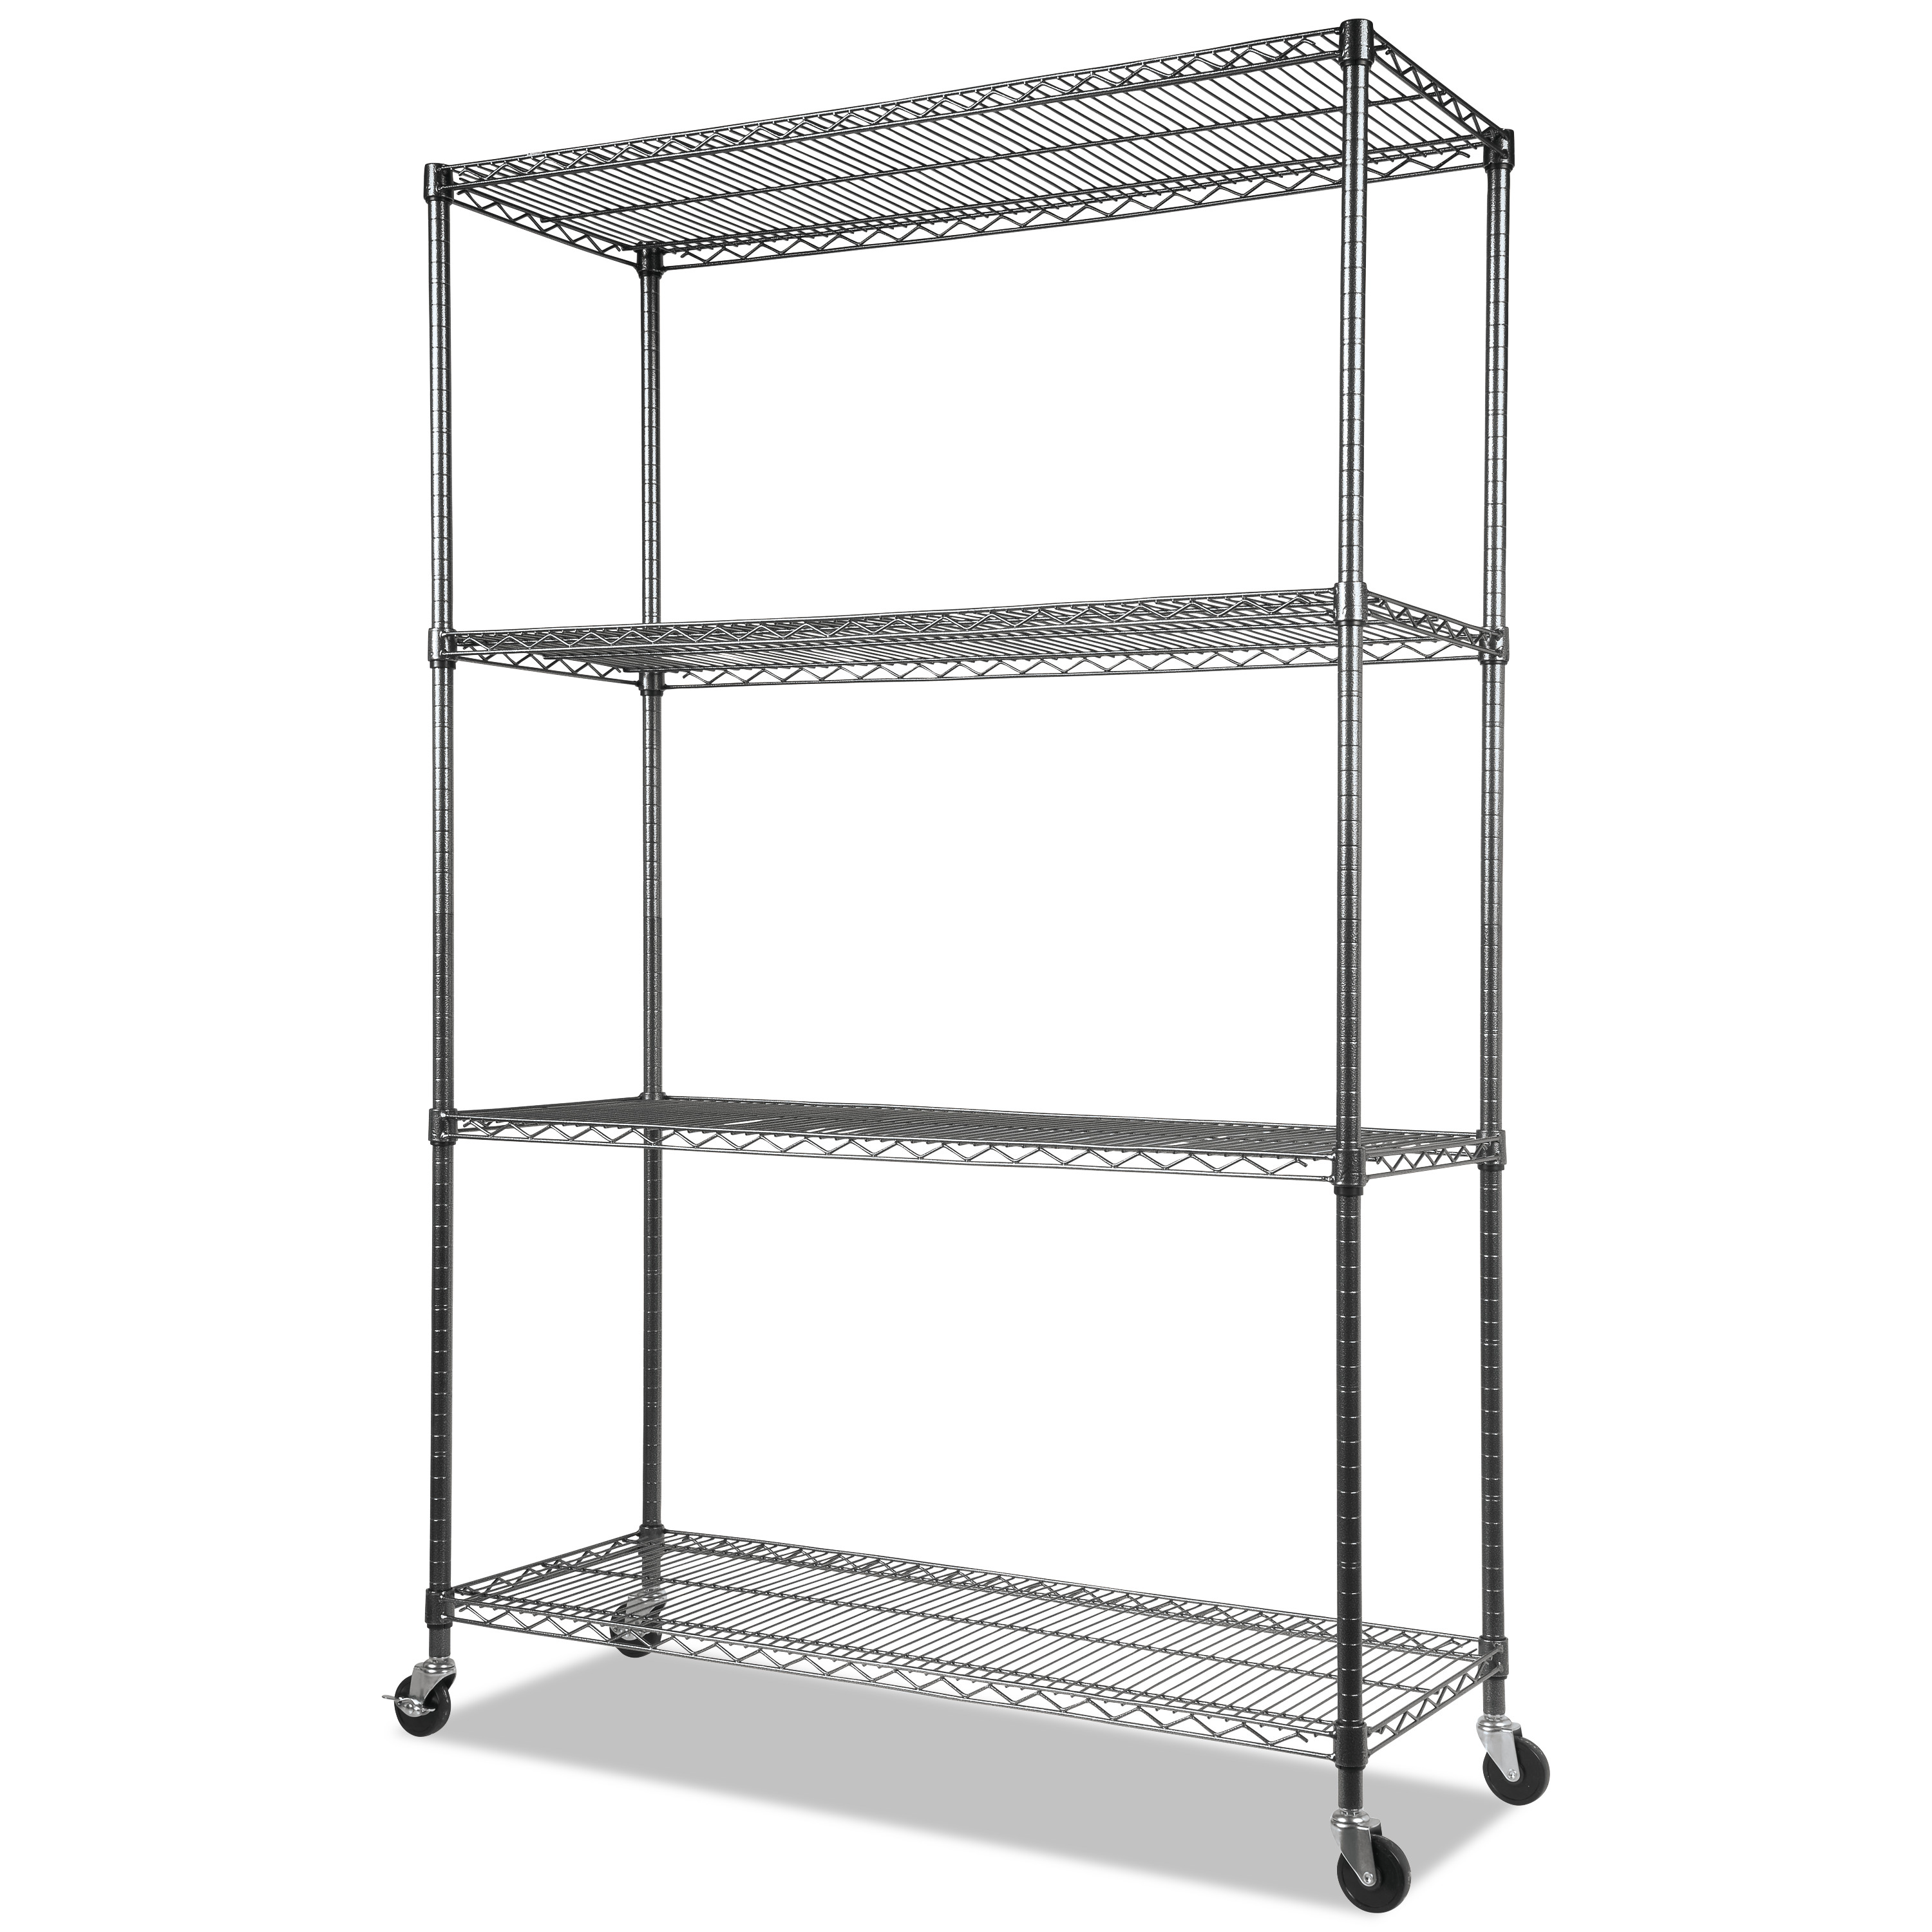 Alera Complete Wire Shelving Unit With Casters Four Shelf